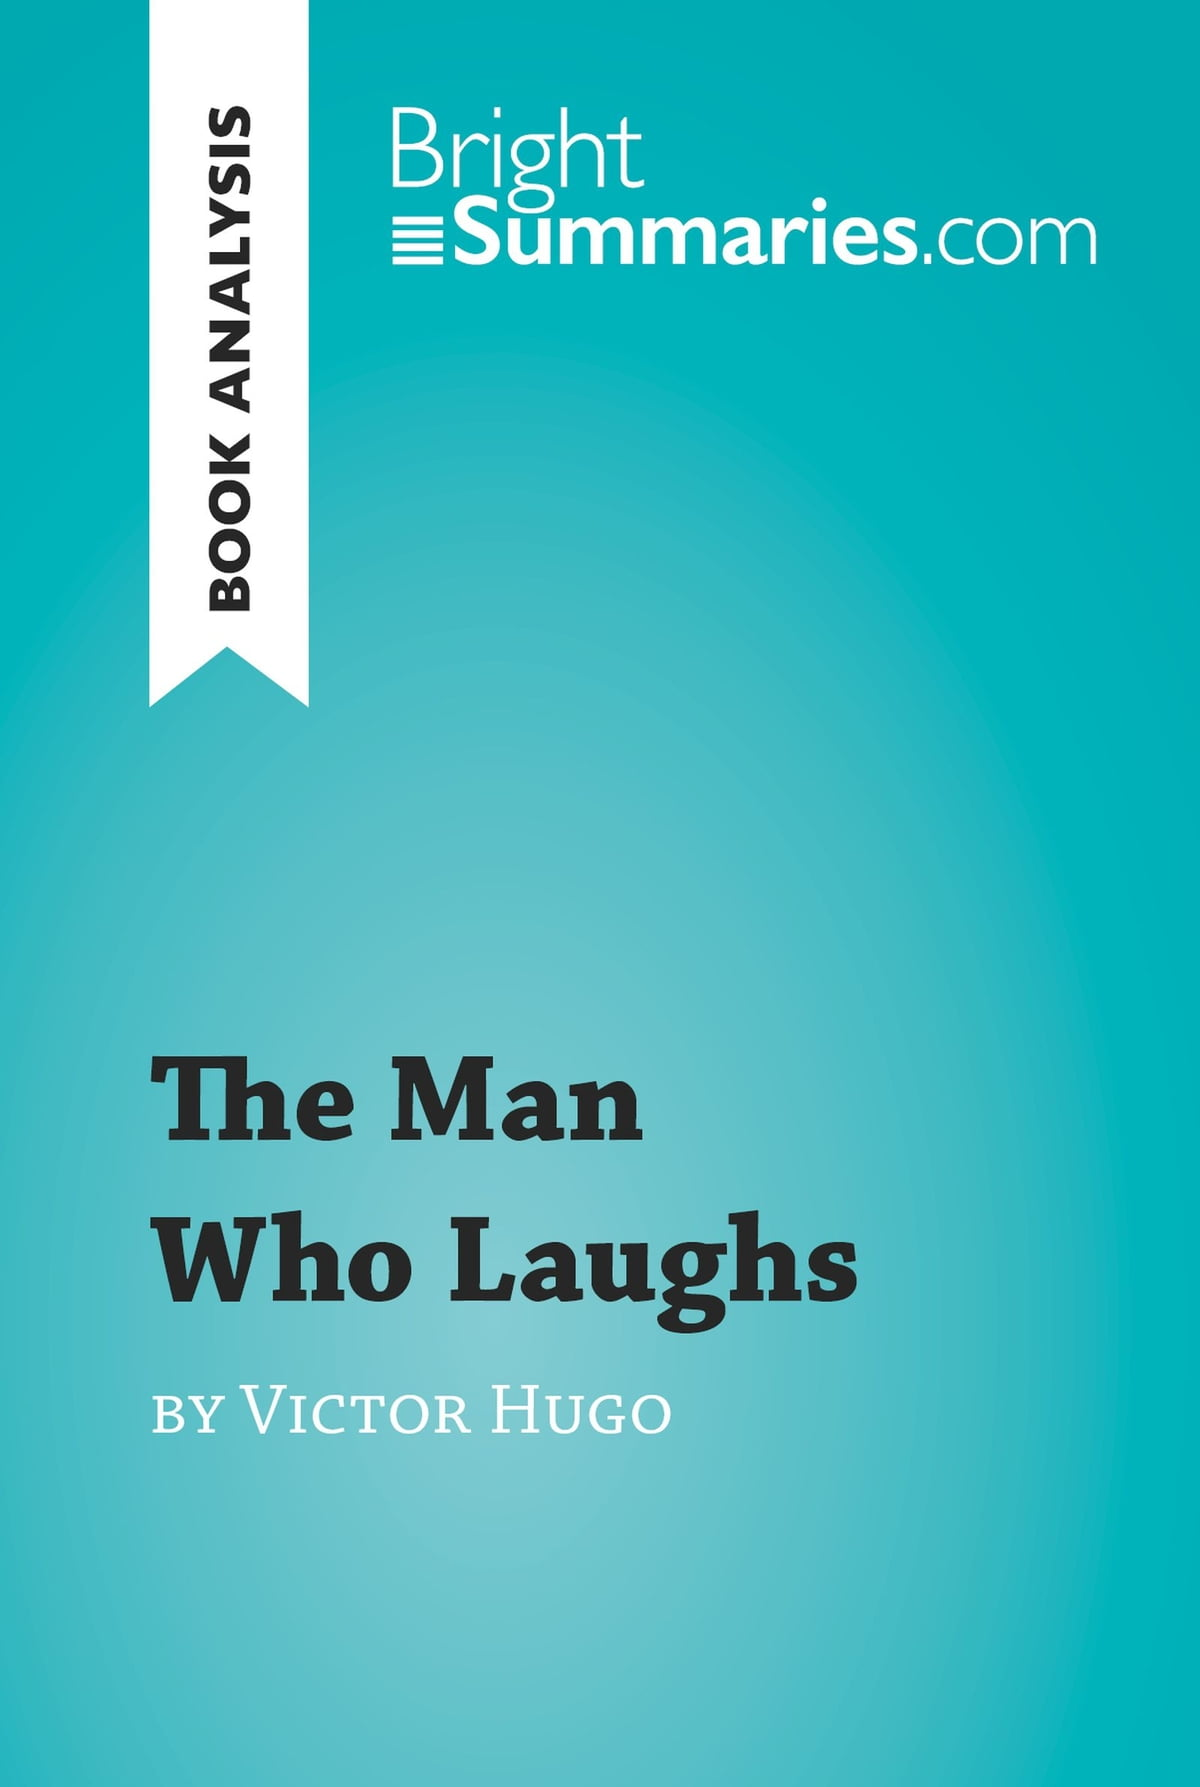 Victor Hugo, The Man Who Laughs: Summary 62